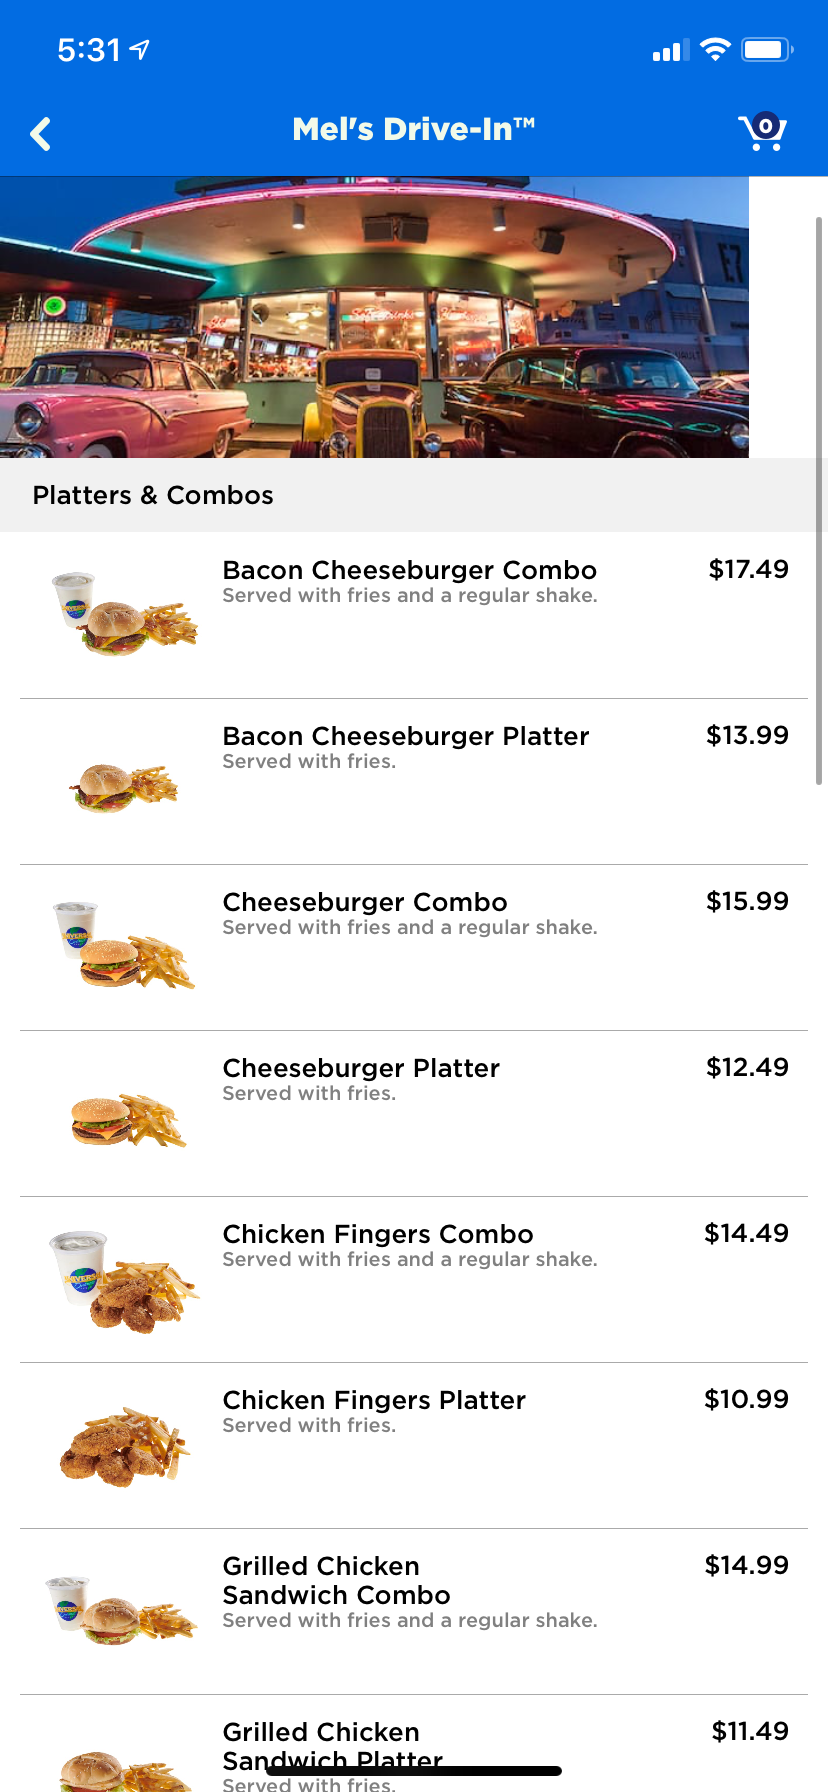 Mobile ordering on the Universal Orlando app